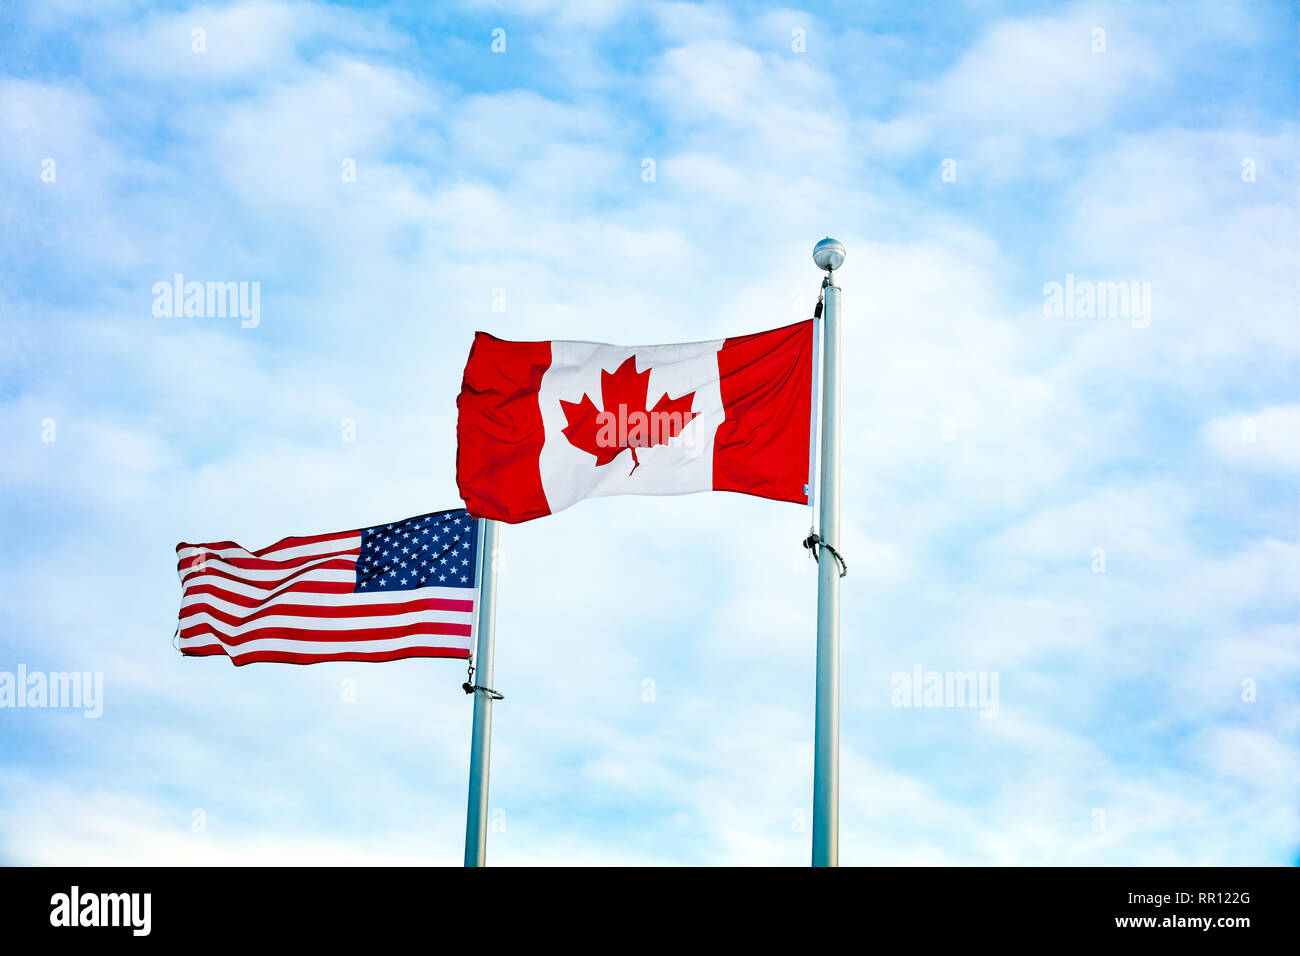 American Canadian Flags Stock Photos & American Canadian